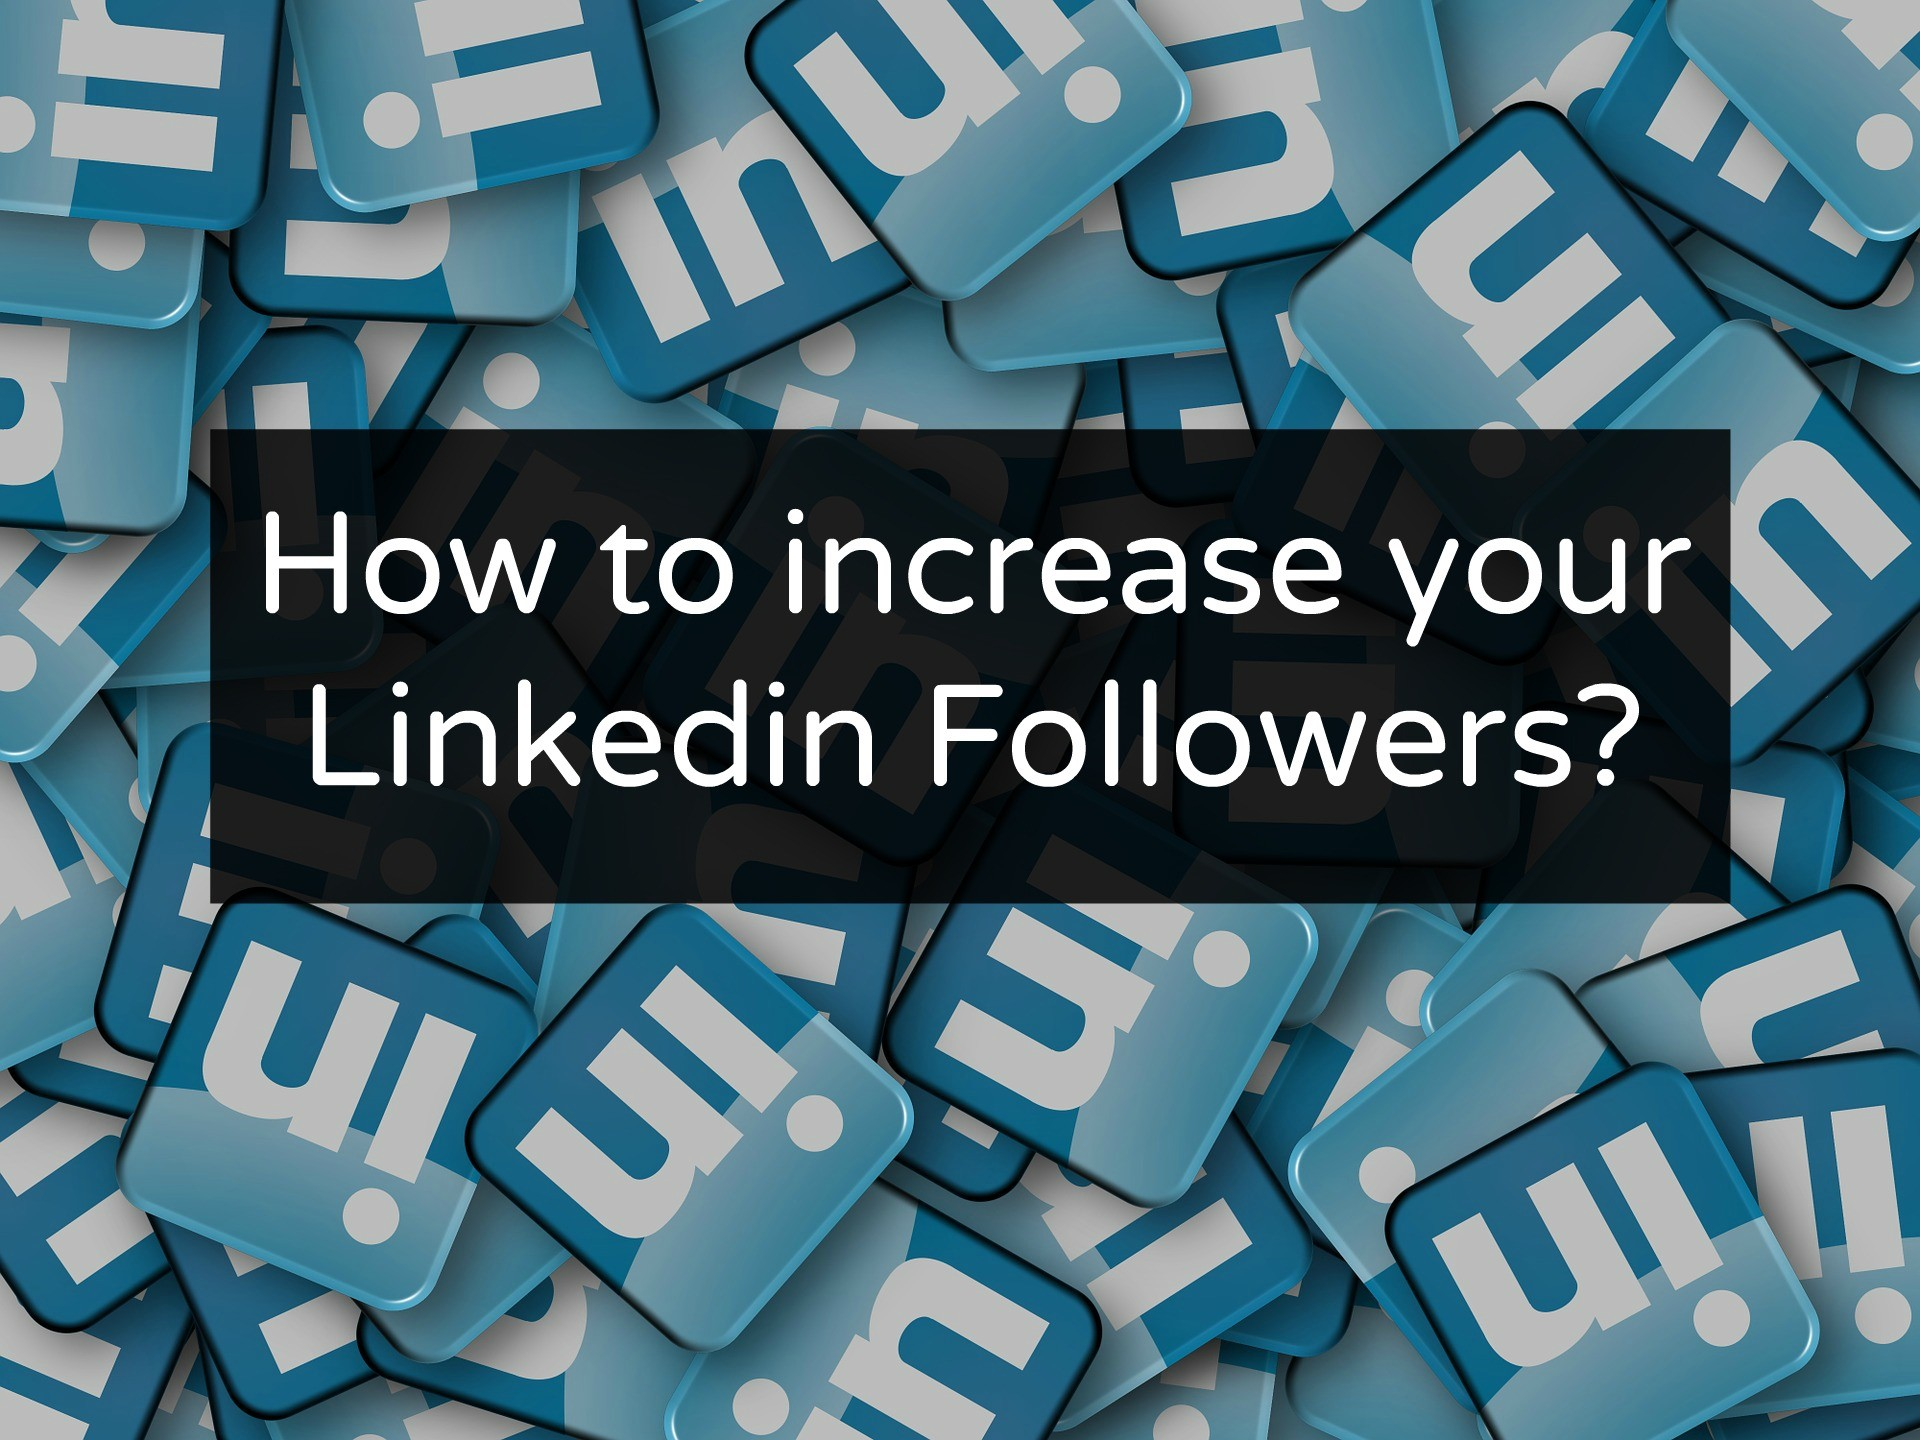 How to increase your LinkedIn Followers